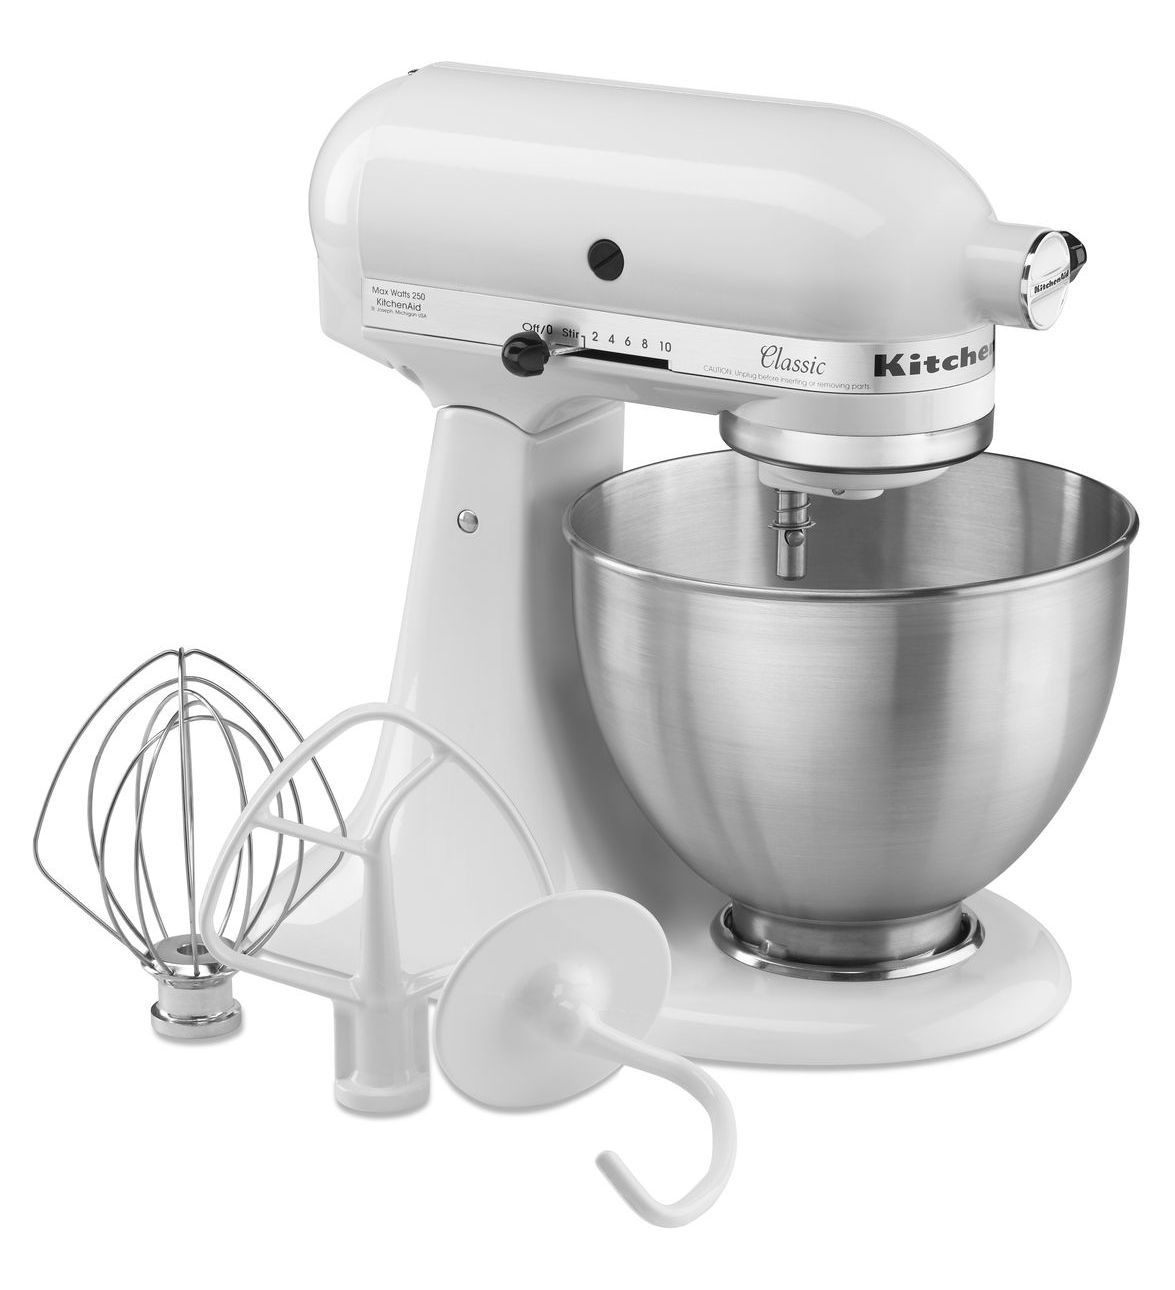 https://vendeze-production.s3.amazonaws.com/uploads/photo/1782/original/stand_mixer.jpg